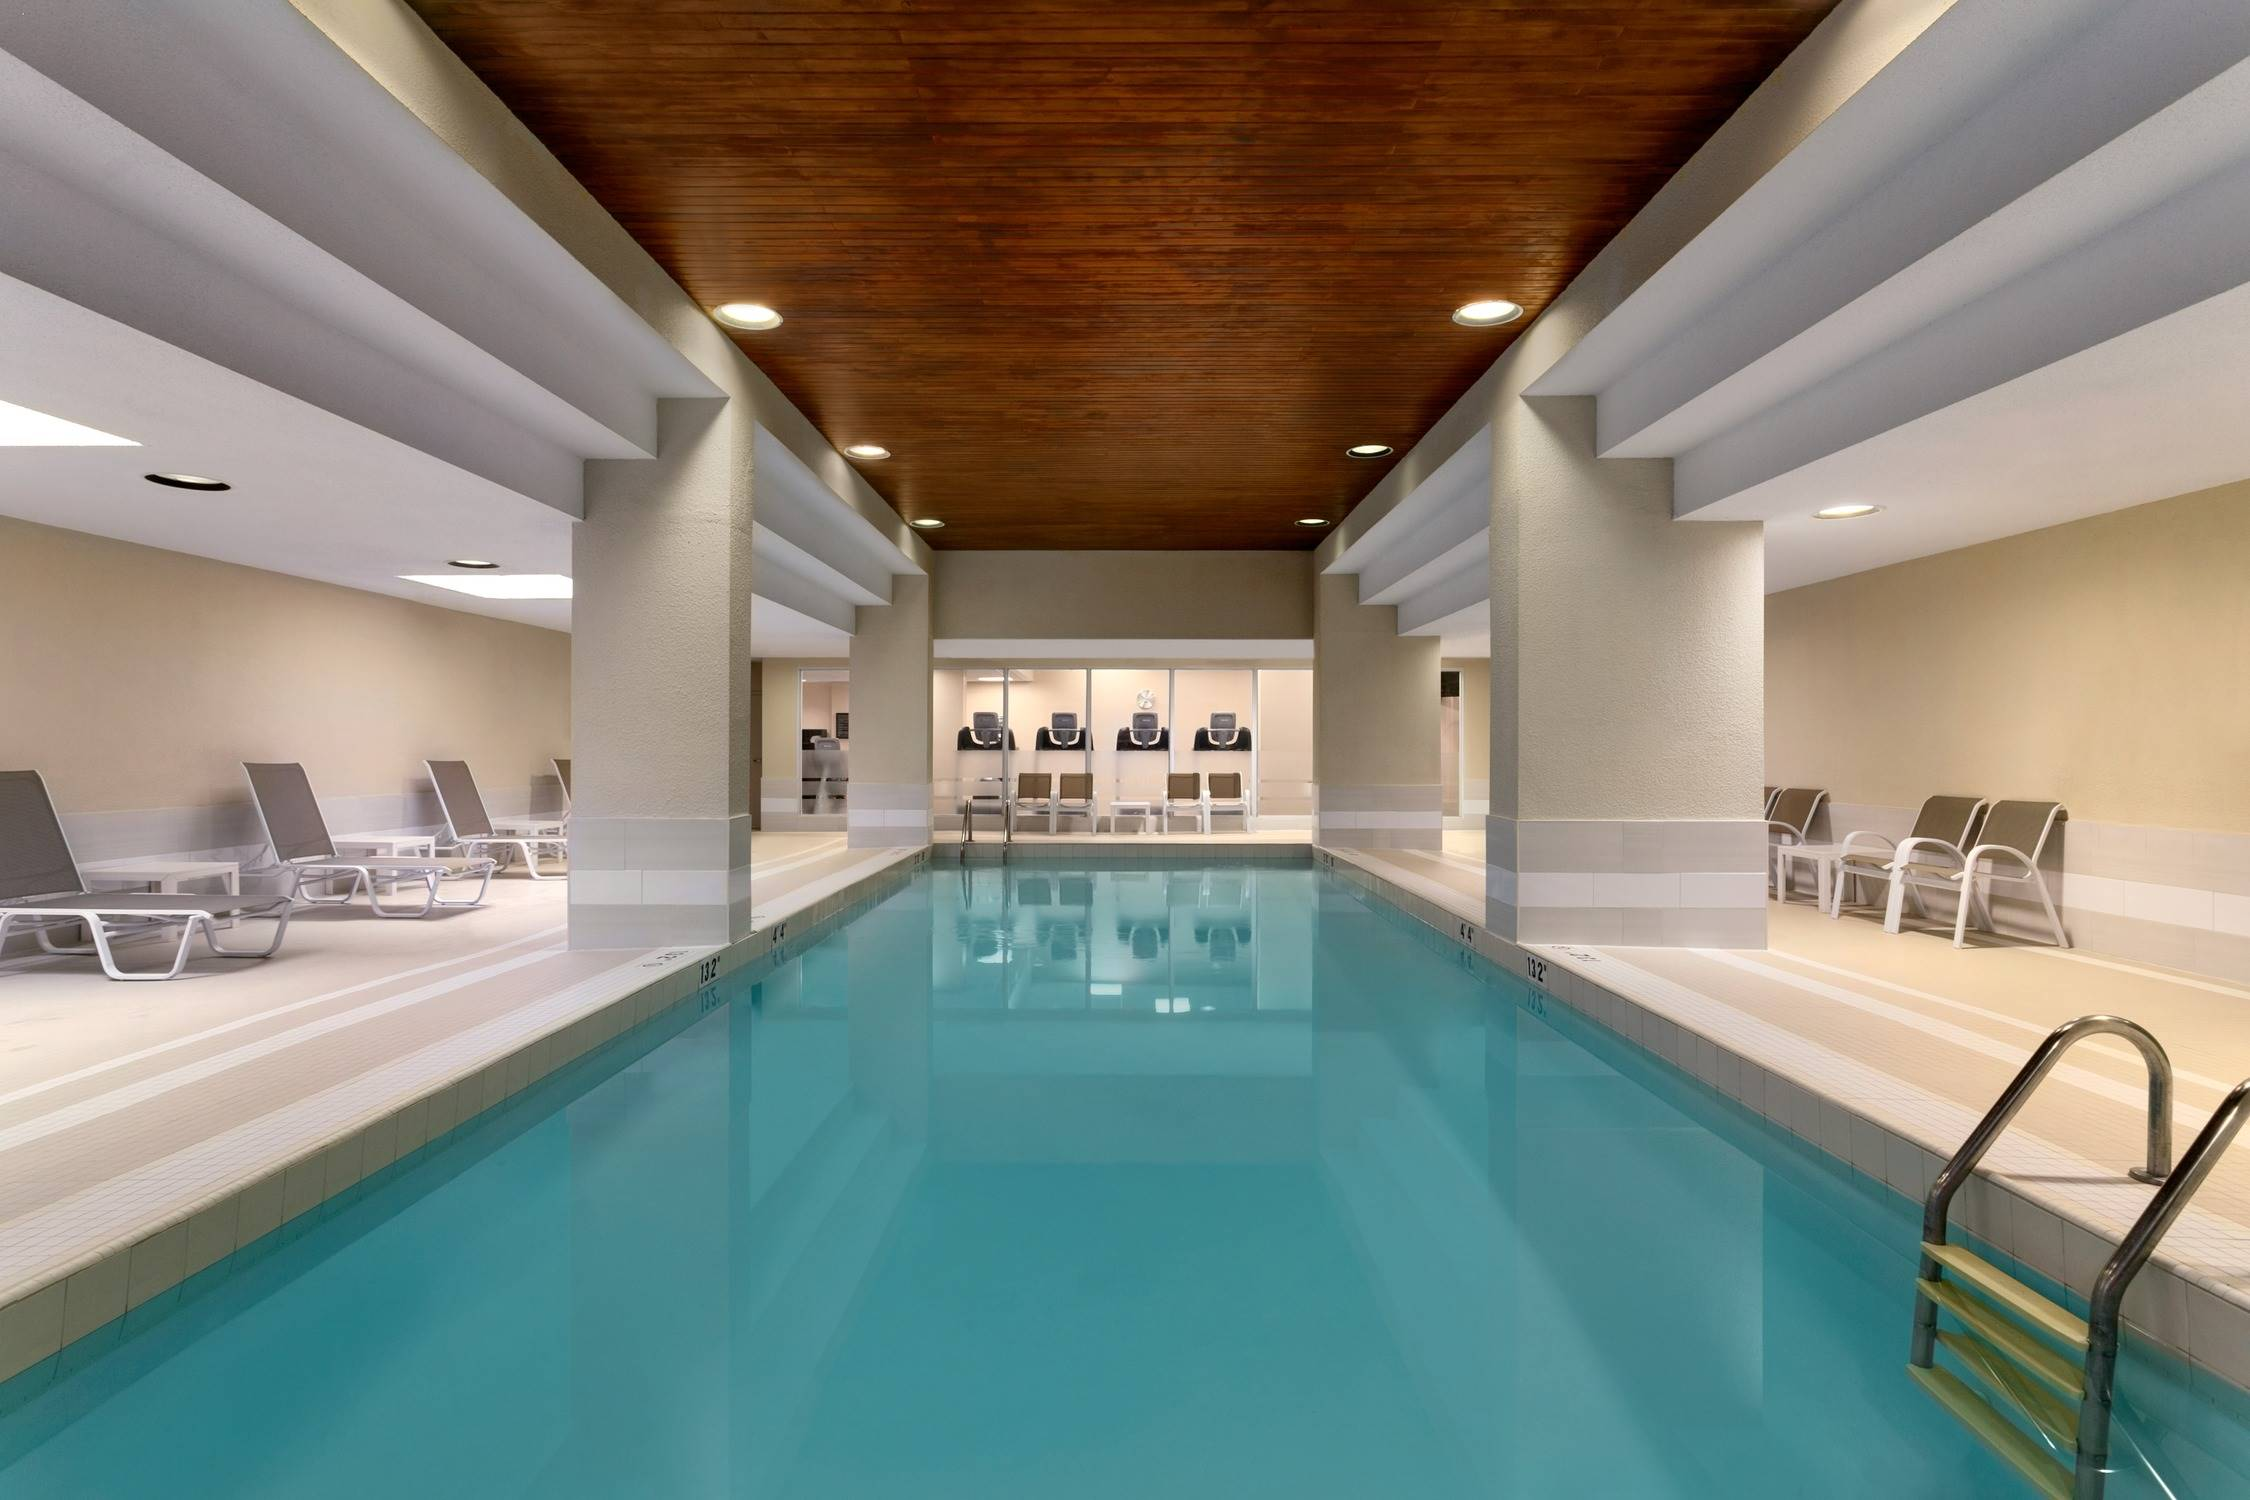 About the DoubleTree by Hilton - Nestled right in the heart of downtown Toronto, this warm pool is great for swimmers of all ages and abilities. Enjoy warm water, free wifi, and towel service. If you build up an appetite during your lesson, make sure you stop by the amazing Hemispheres Restaurant and Bistro for a bite!